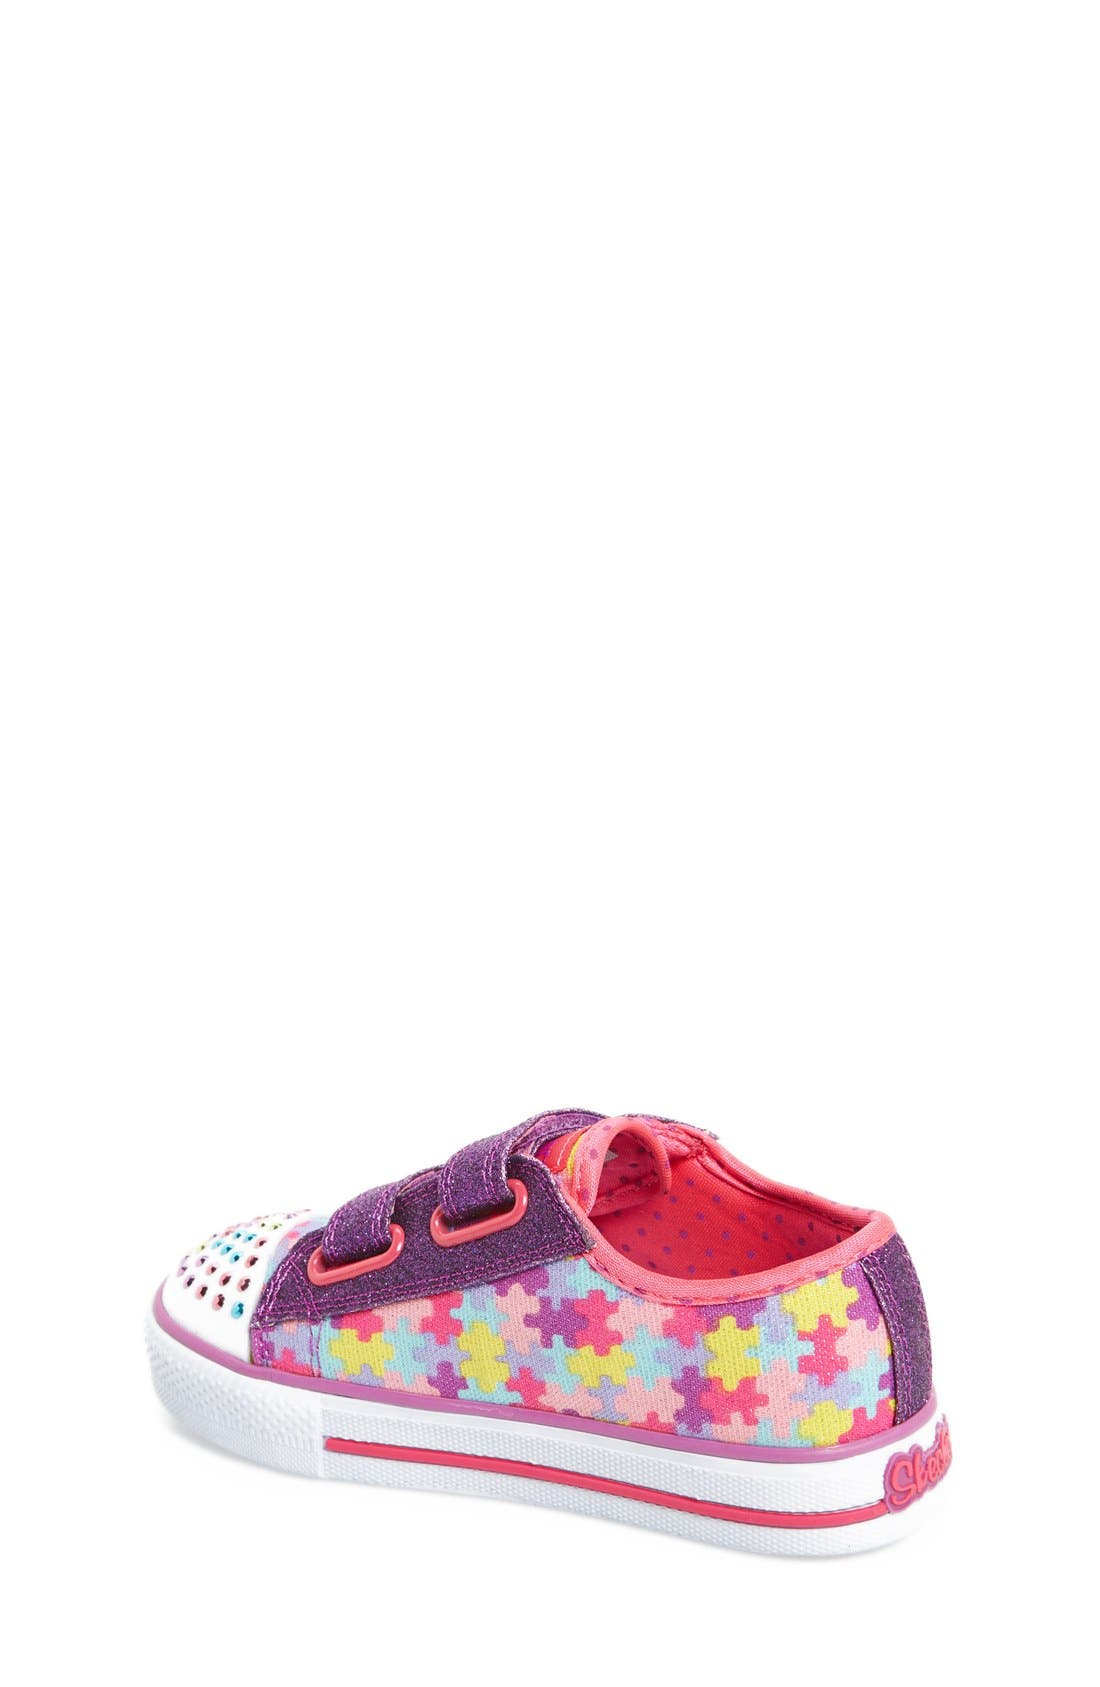 Alternate Image 2  - SKECHERS 'Twinkle Toes - Shuffles Jumpin Jigsaw' Light-Up Sneaker (Toddler)